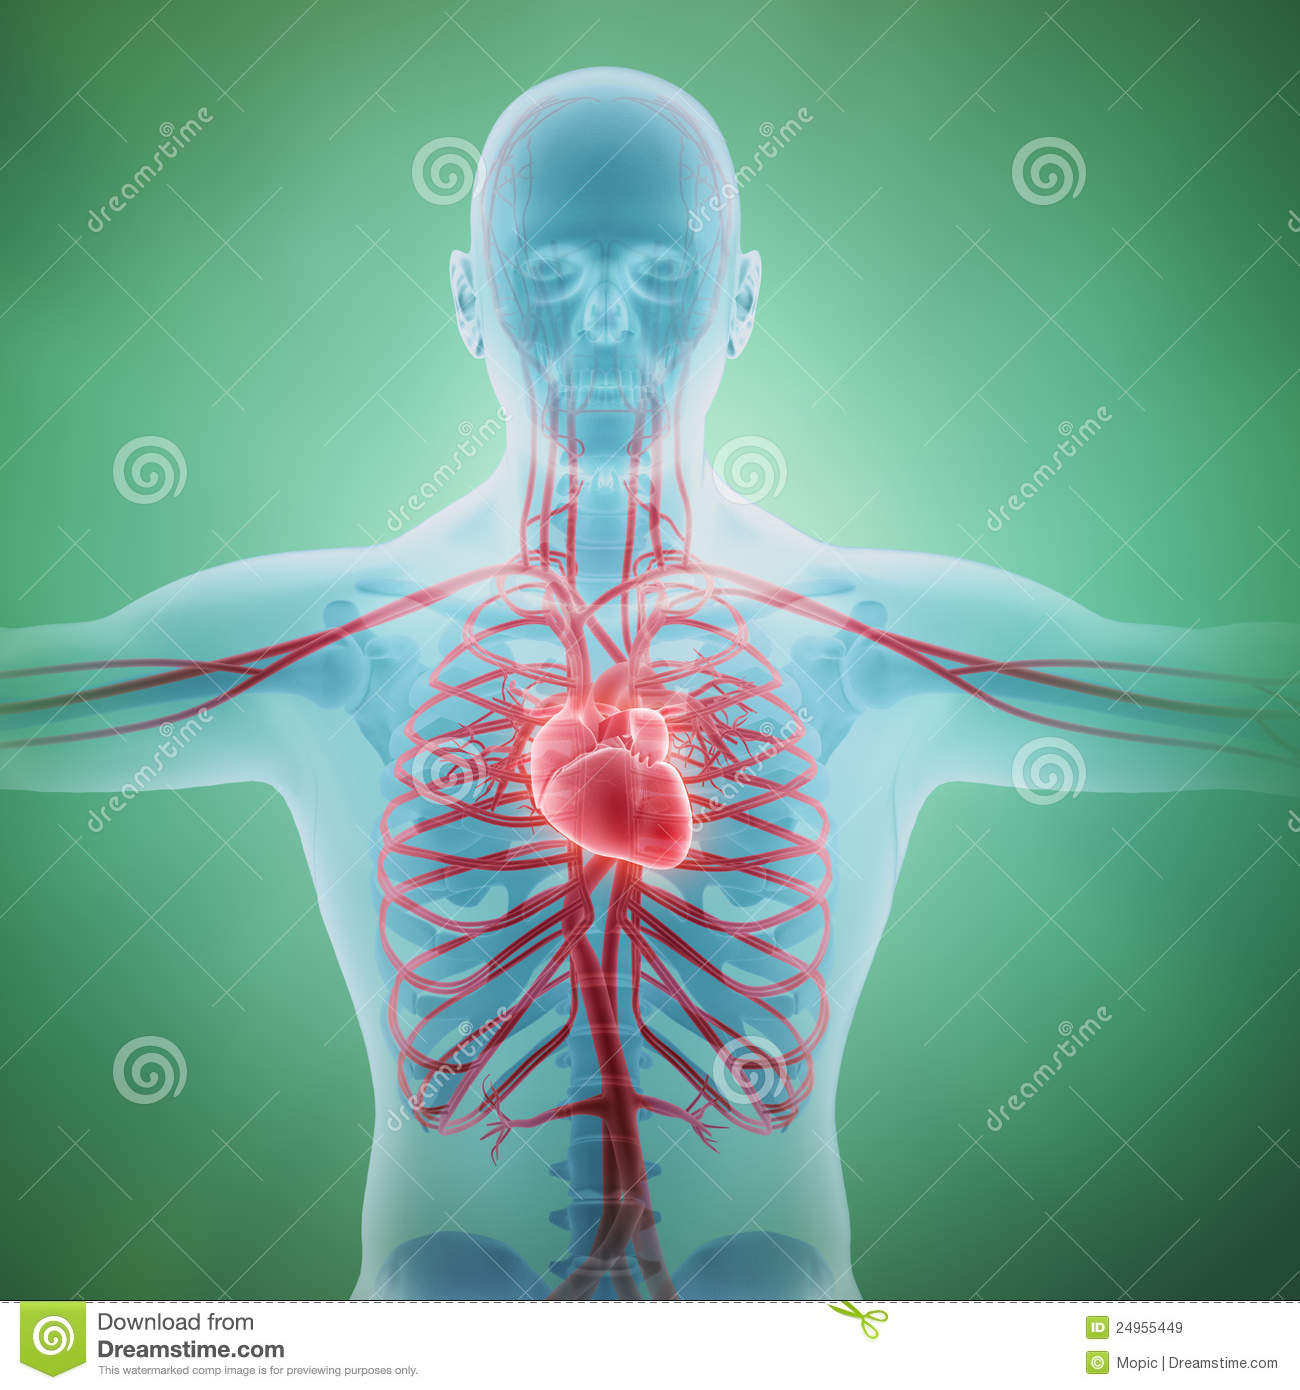 Human Circulatory System Stock Image Image Of Blue Artery 24955449